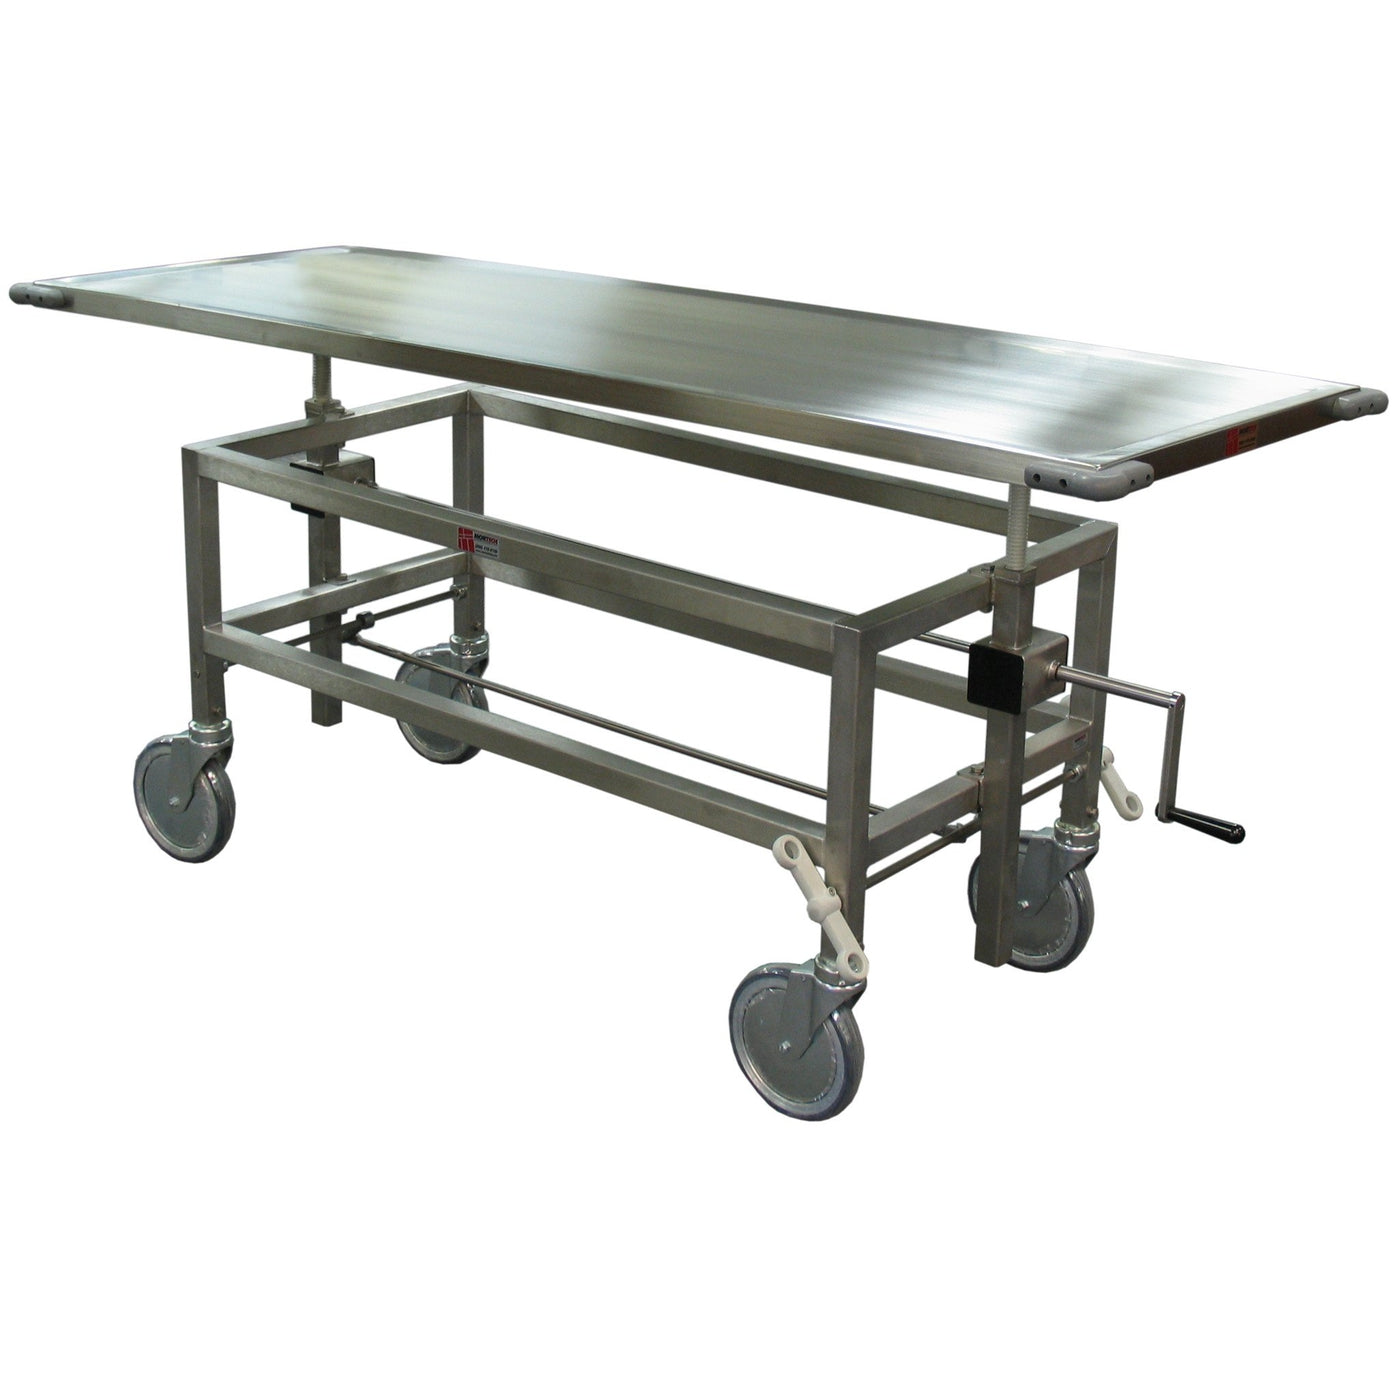 Front & Rear Elevating Autopsy Carriers-Body Transporter-Mortech Manufacturing Company Inc. Quality Stainless Steel Autopsy, Morgue, Funeral Home, Necropsy, Veterinary / Anatomy, Dissection Equipment and Accessories